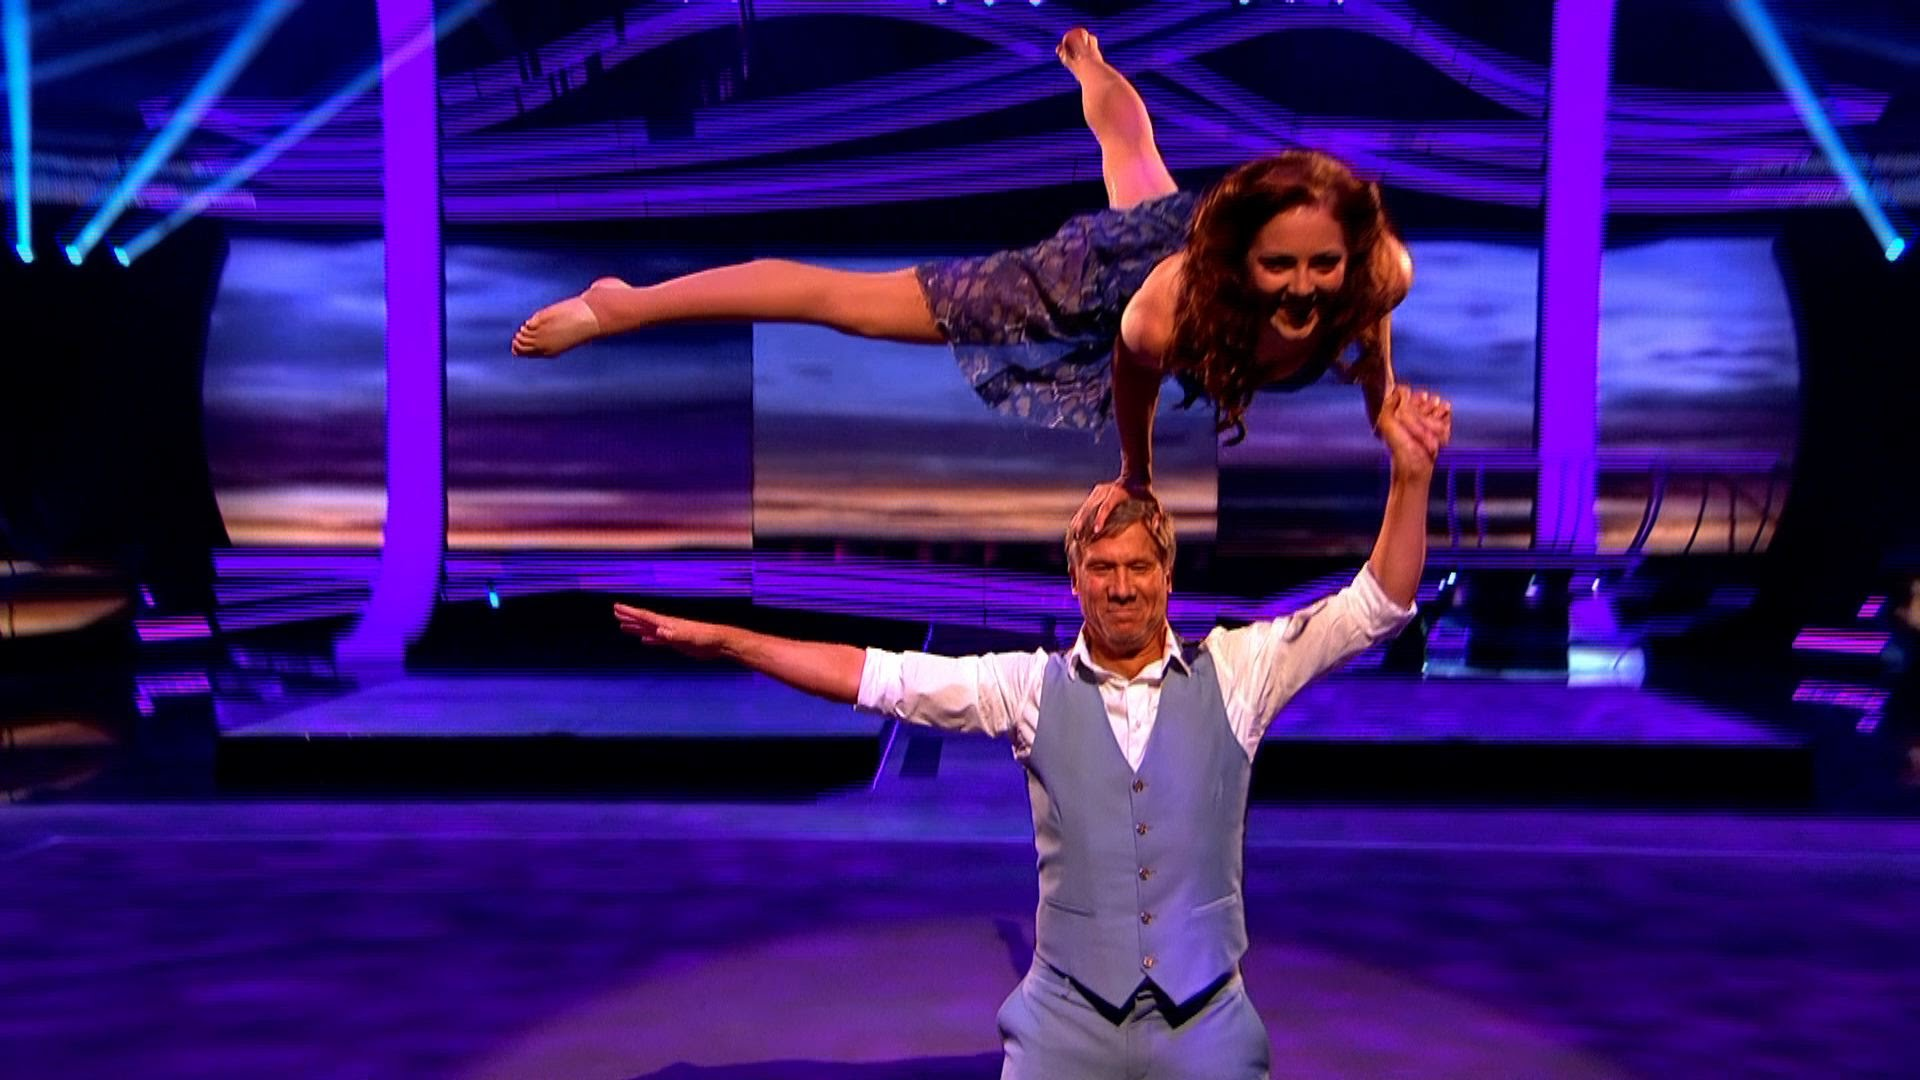 Tumble: BBC One's new Celebrity Gymnastic Circus show!